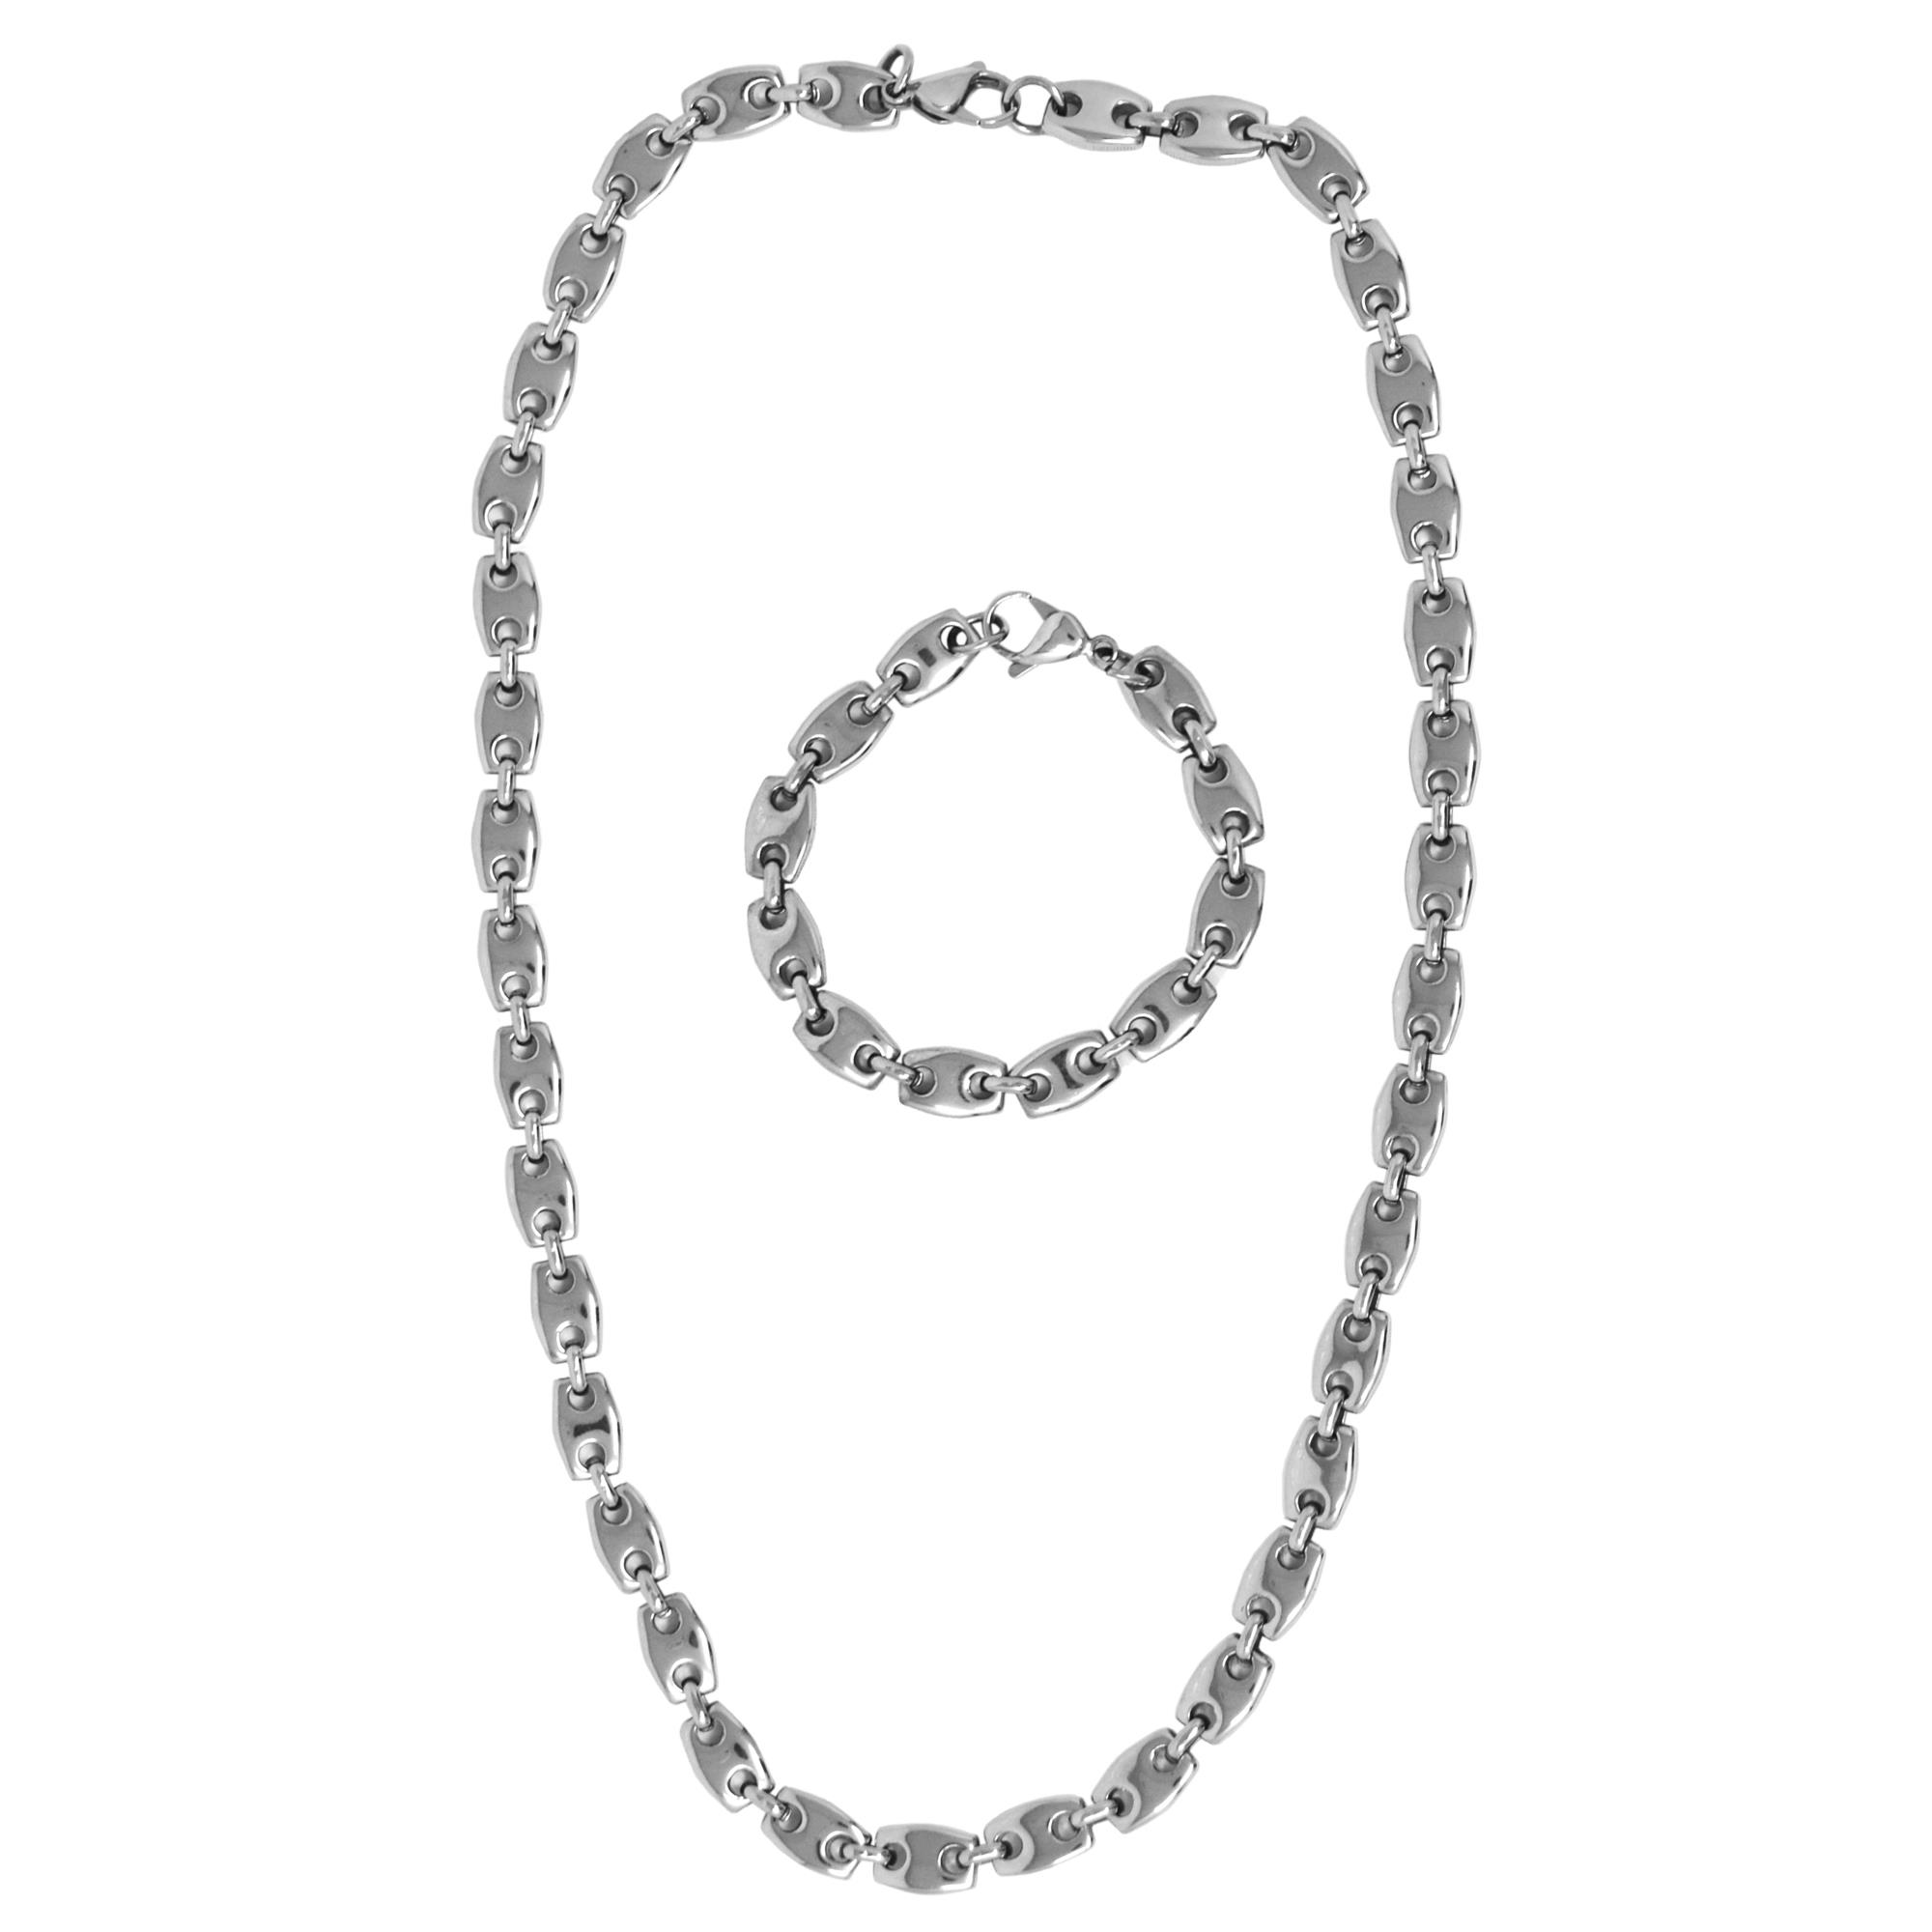 S STEEL NK/BR SET 24IN/61CM CHAINMAIL LINK